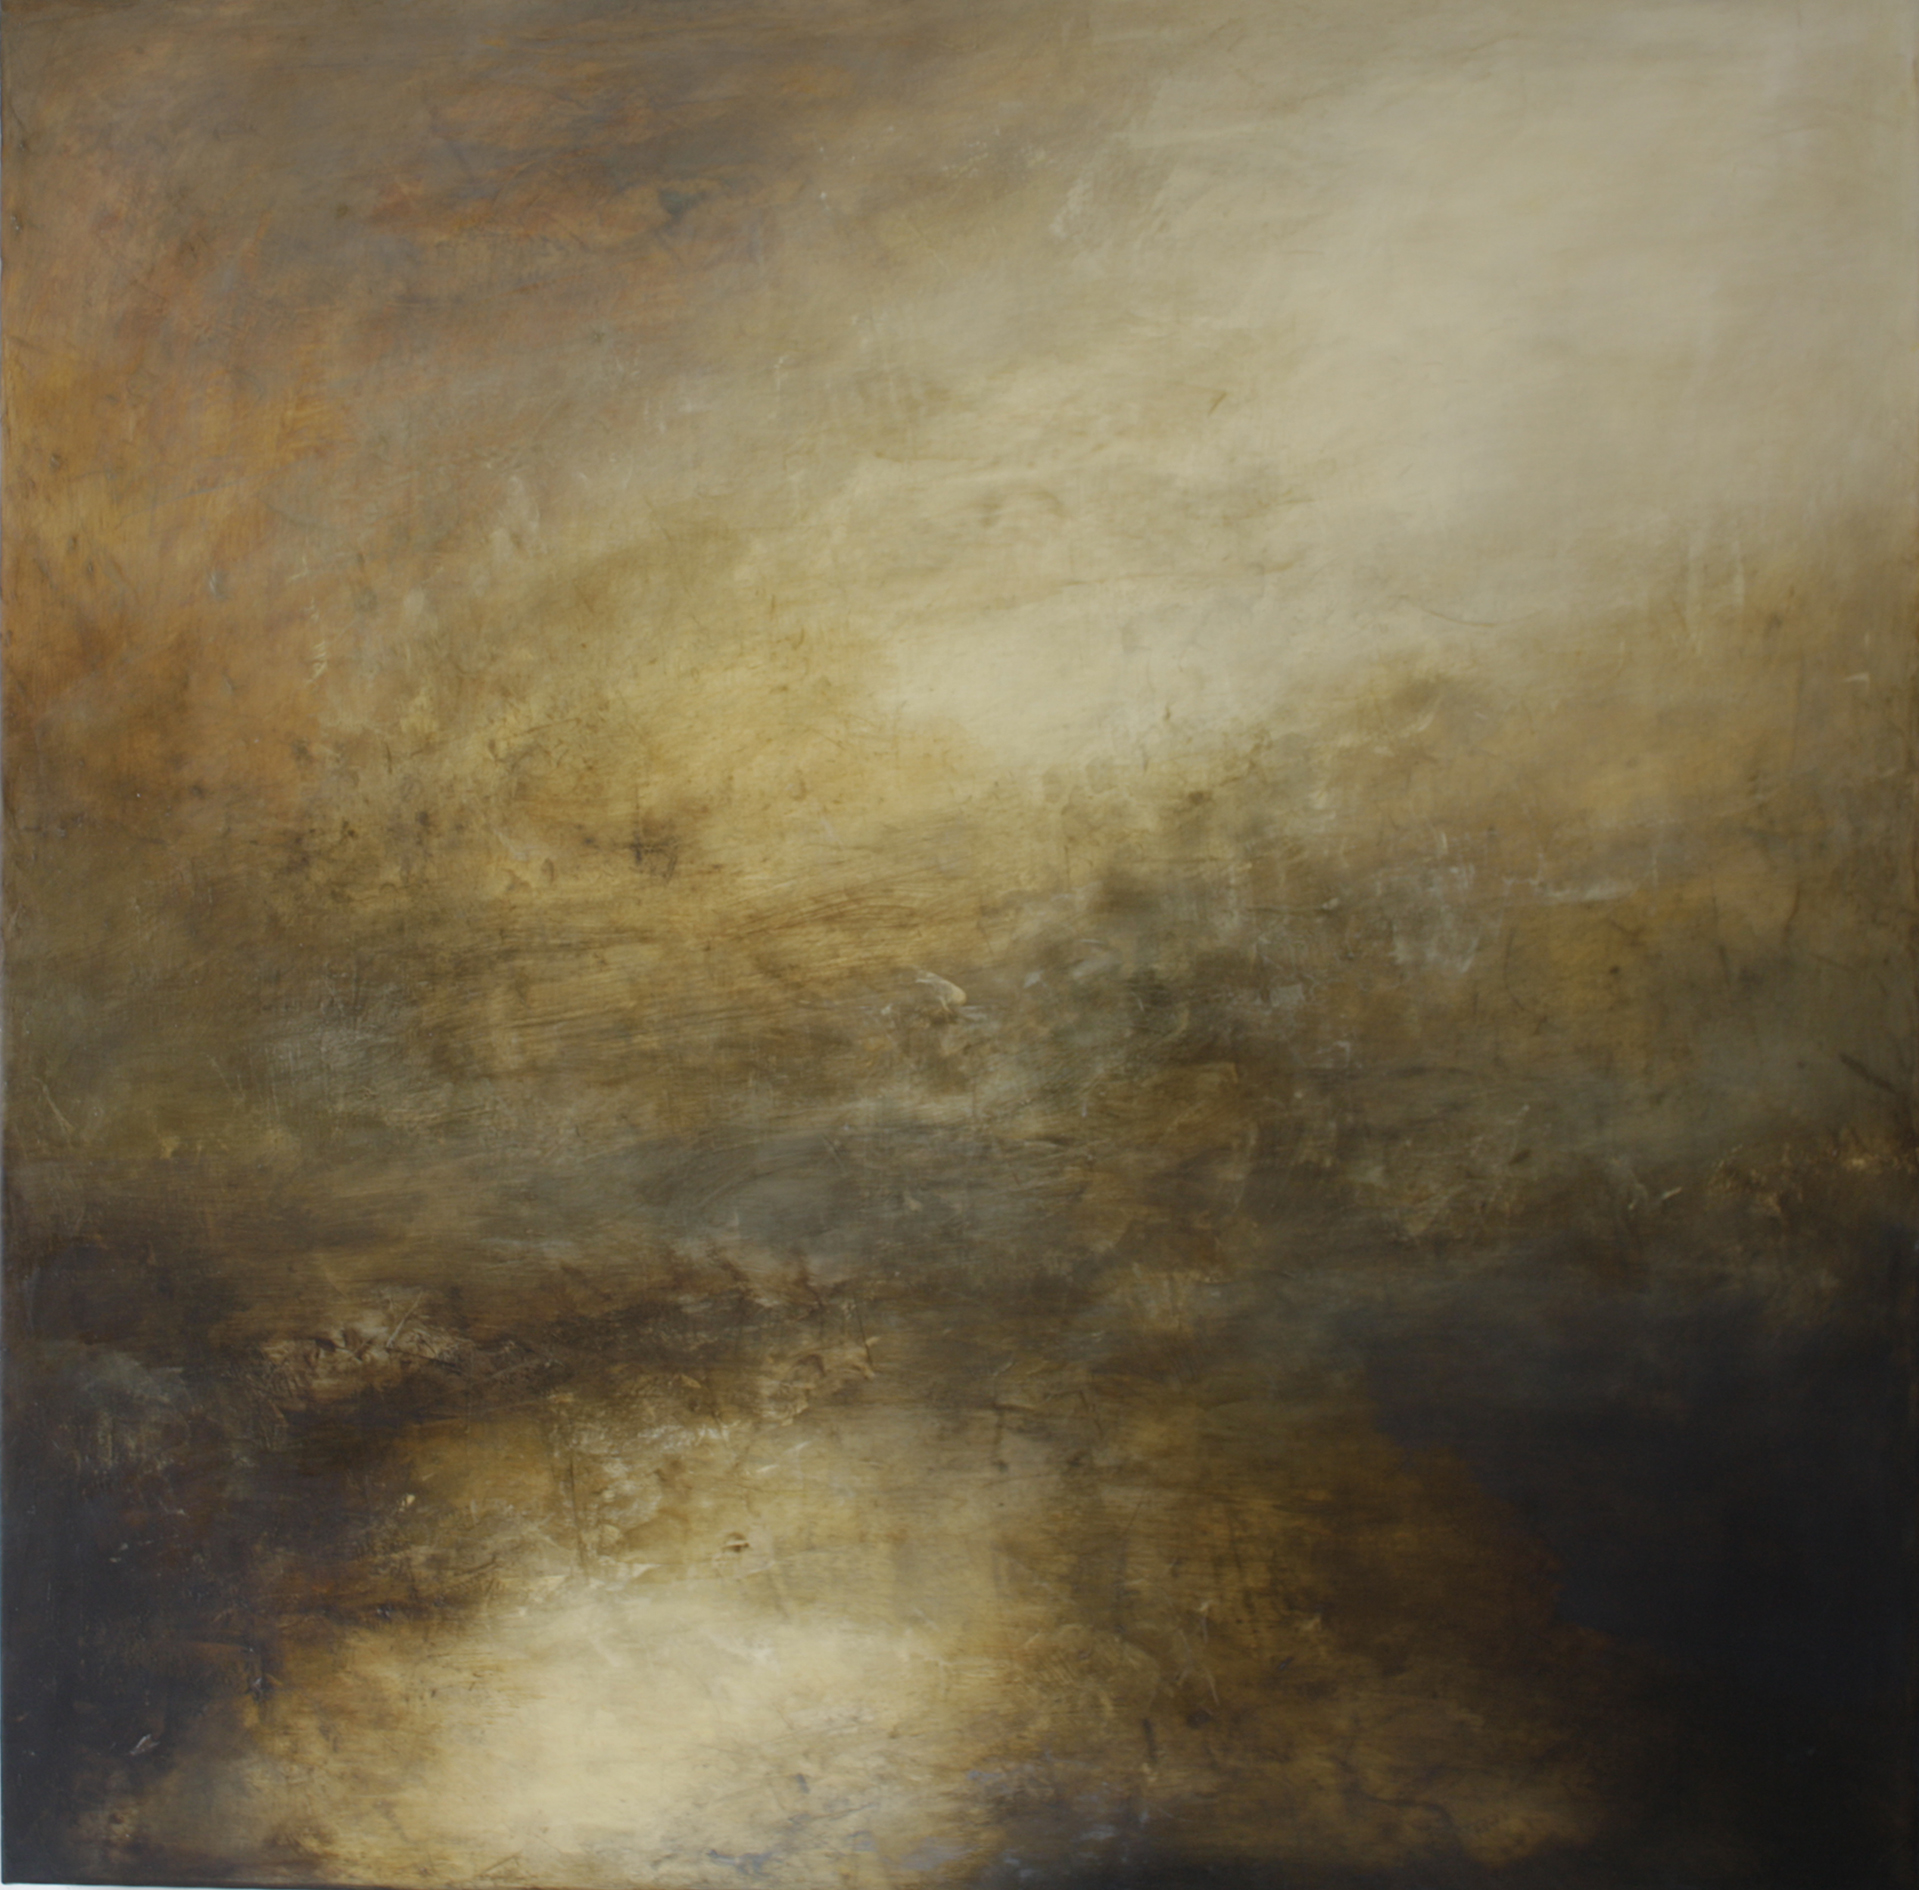 Artist: Victoria Graimes  Title: Elements  Size: 115 x 115 cm  Medium: Oil on canvas  Price: £3250   Buy Now